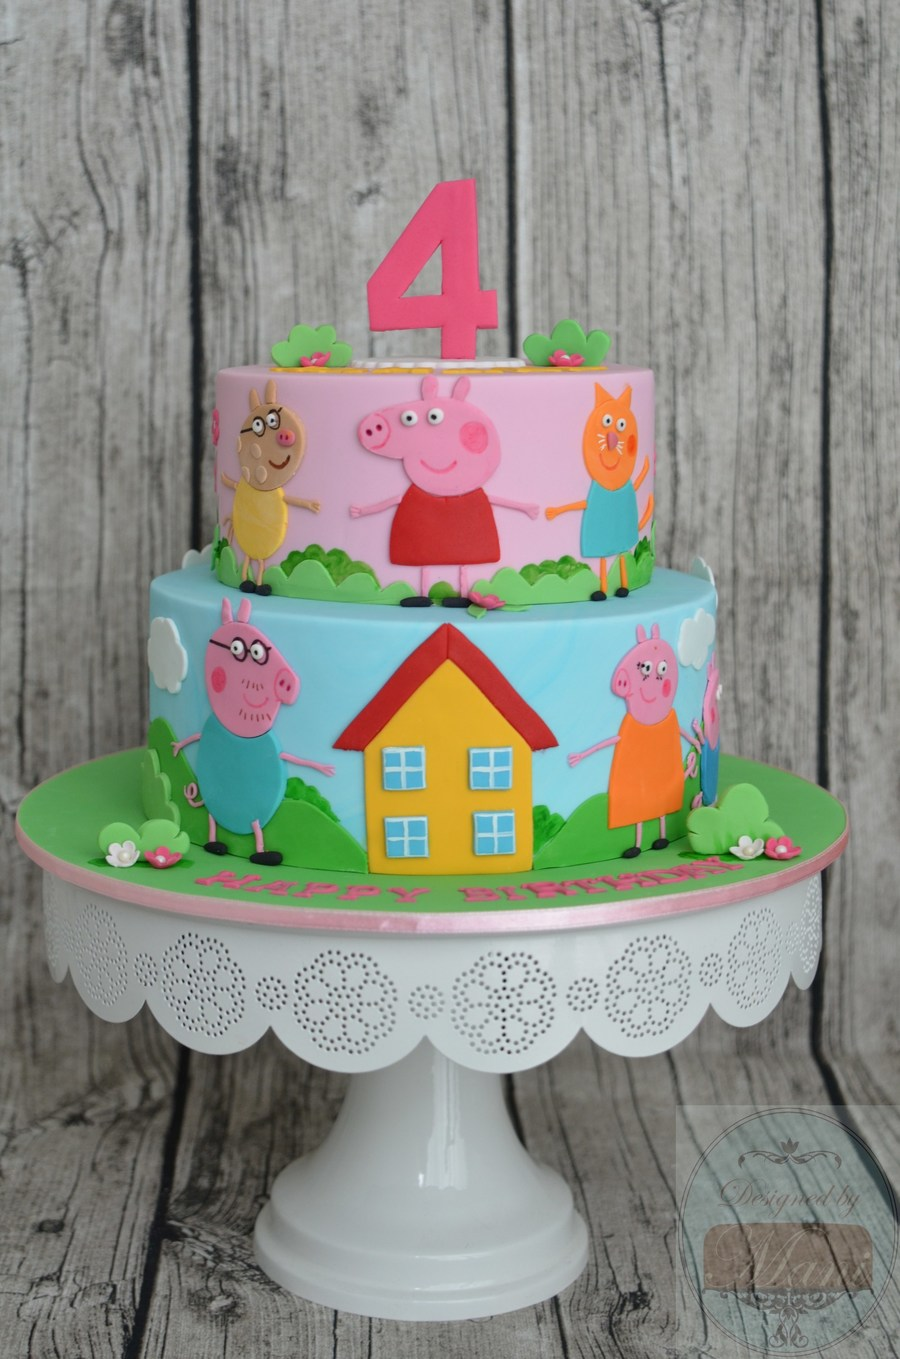 peppa pig video for free  »  8 Image »  Amazing..!